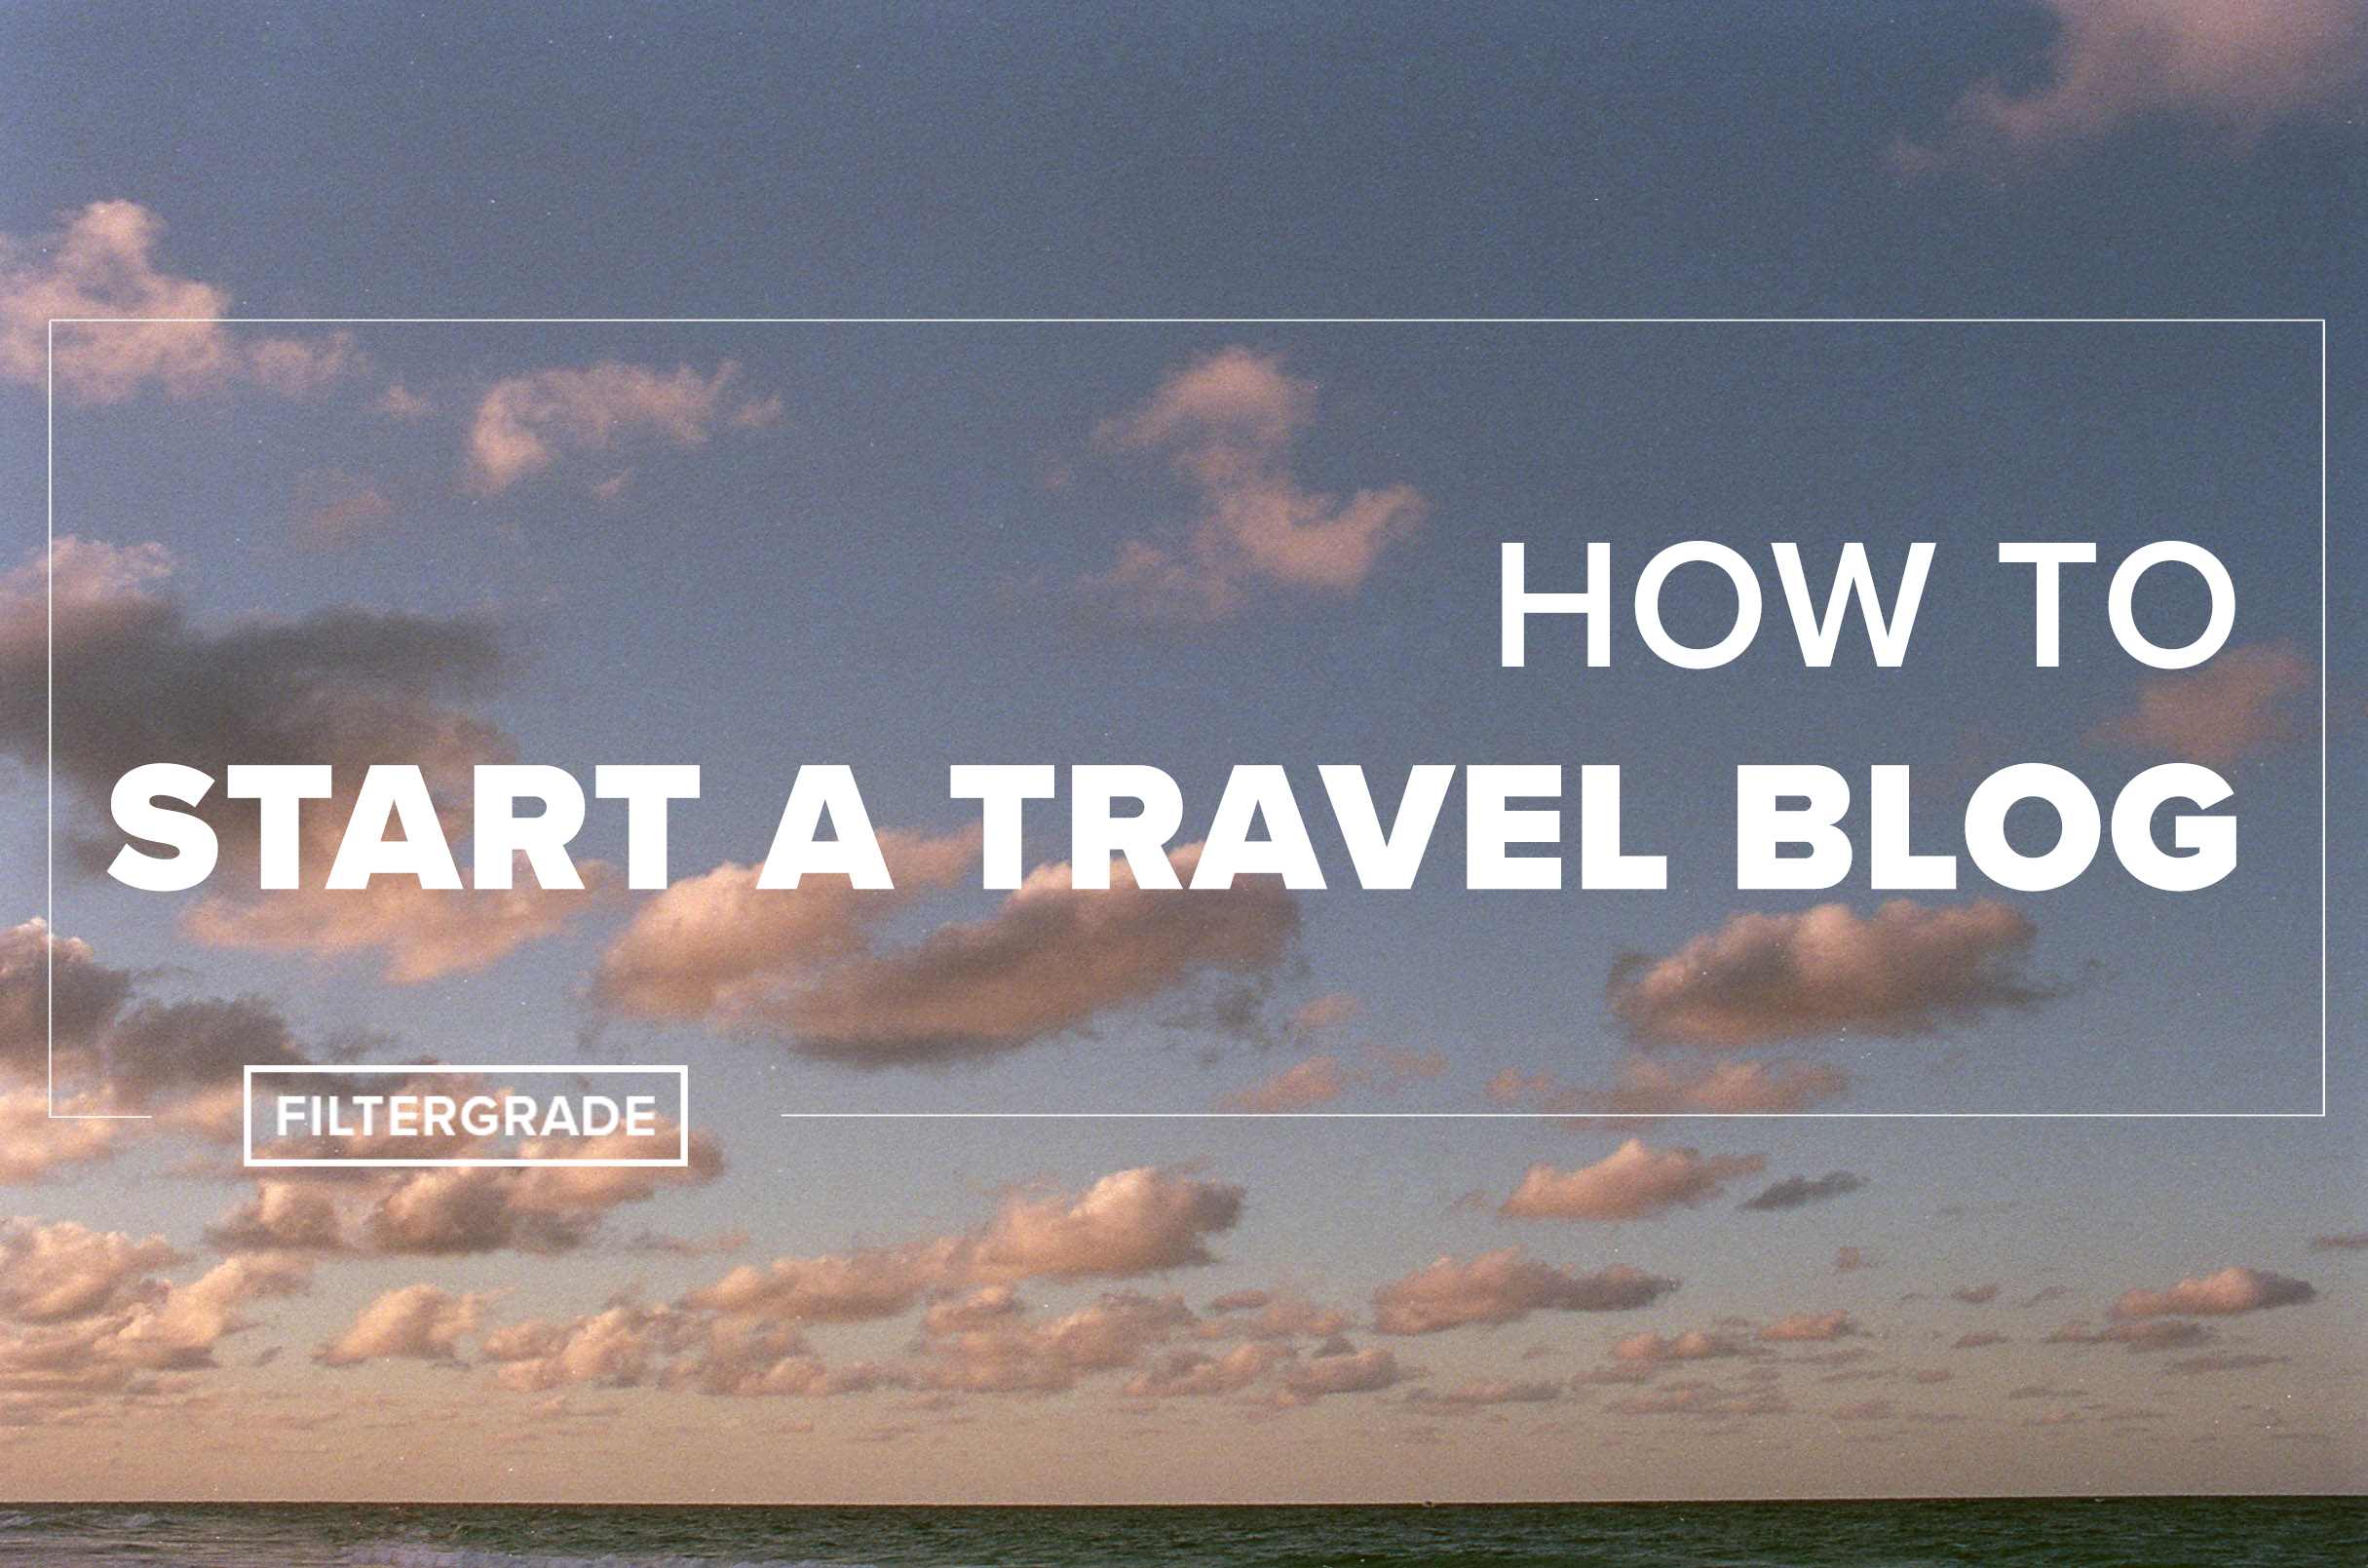 How to Start a Travel Blog - FilterGrade